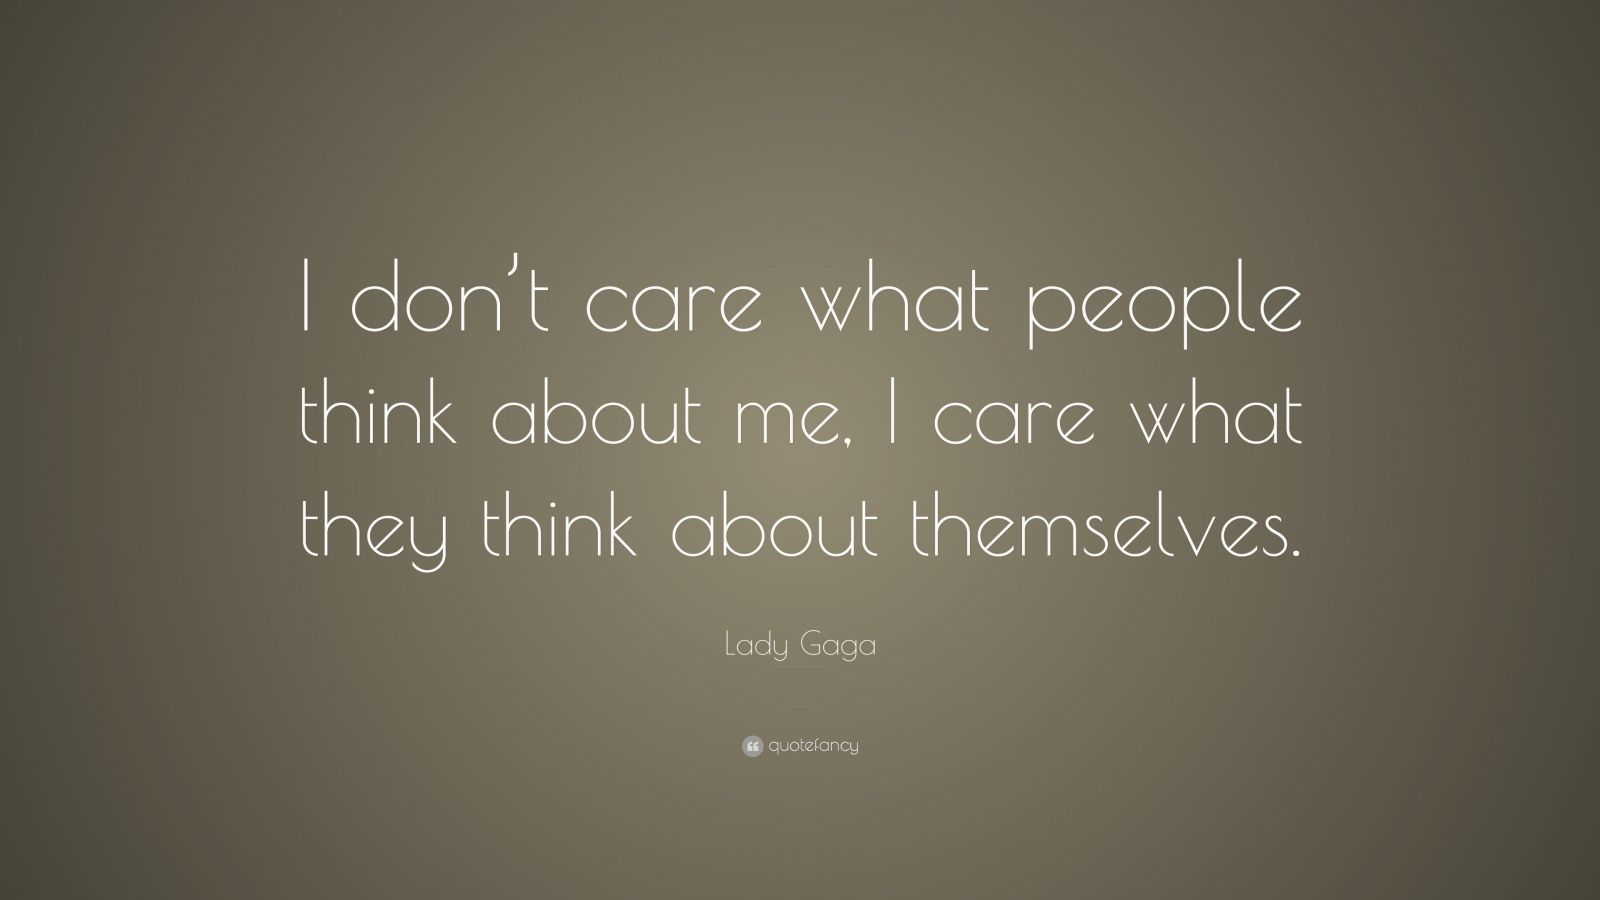 """Lady Gaga Quote: """"I don't care what people think about me, I care what they think about themselves."""""""